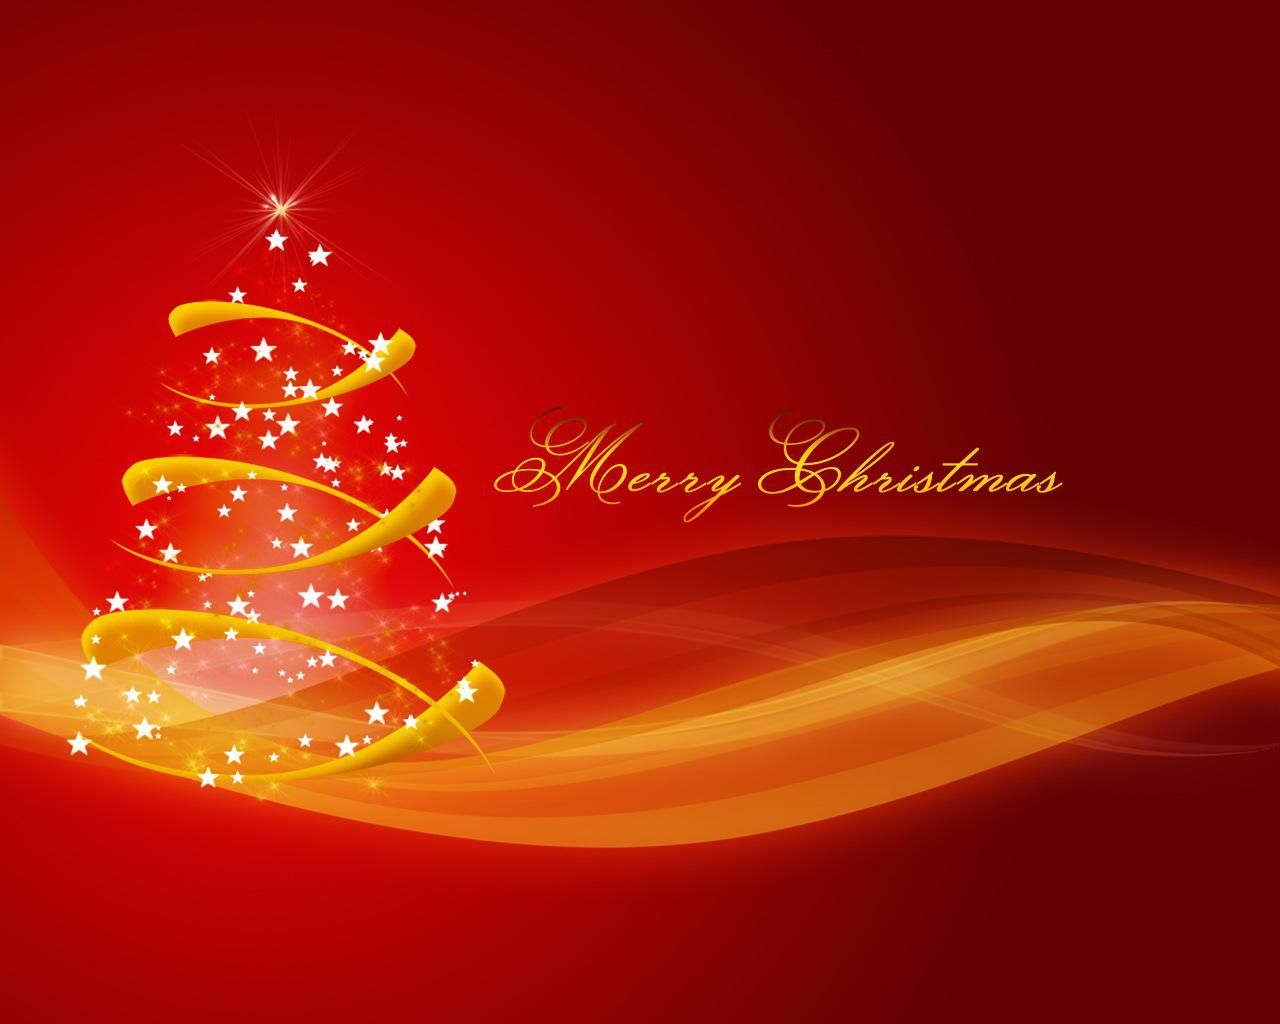 free photos for background | free christmas powerpoint backgrounds, Powerpoint templates